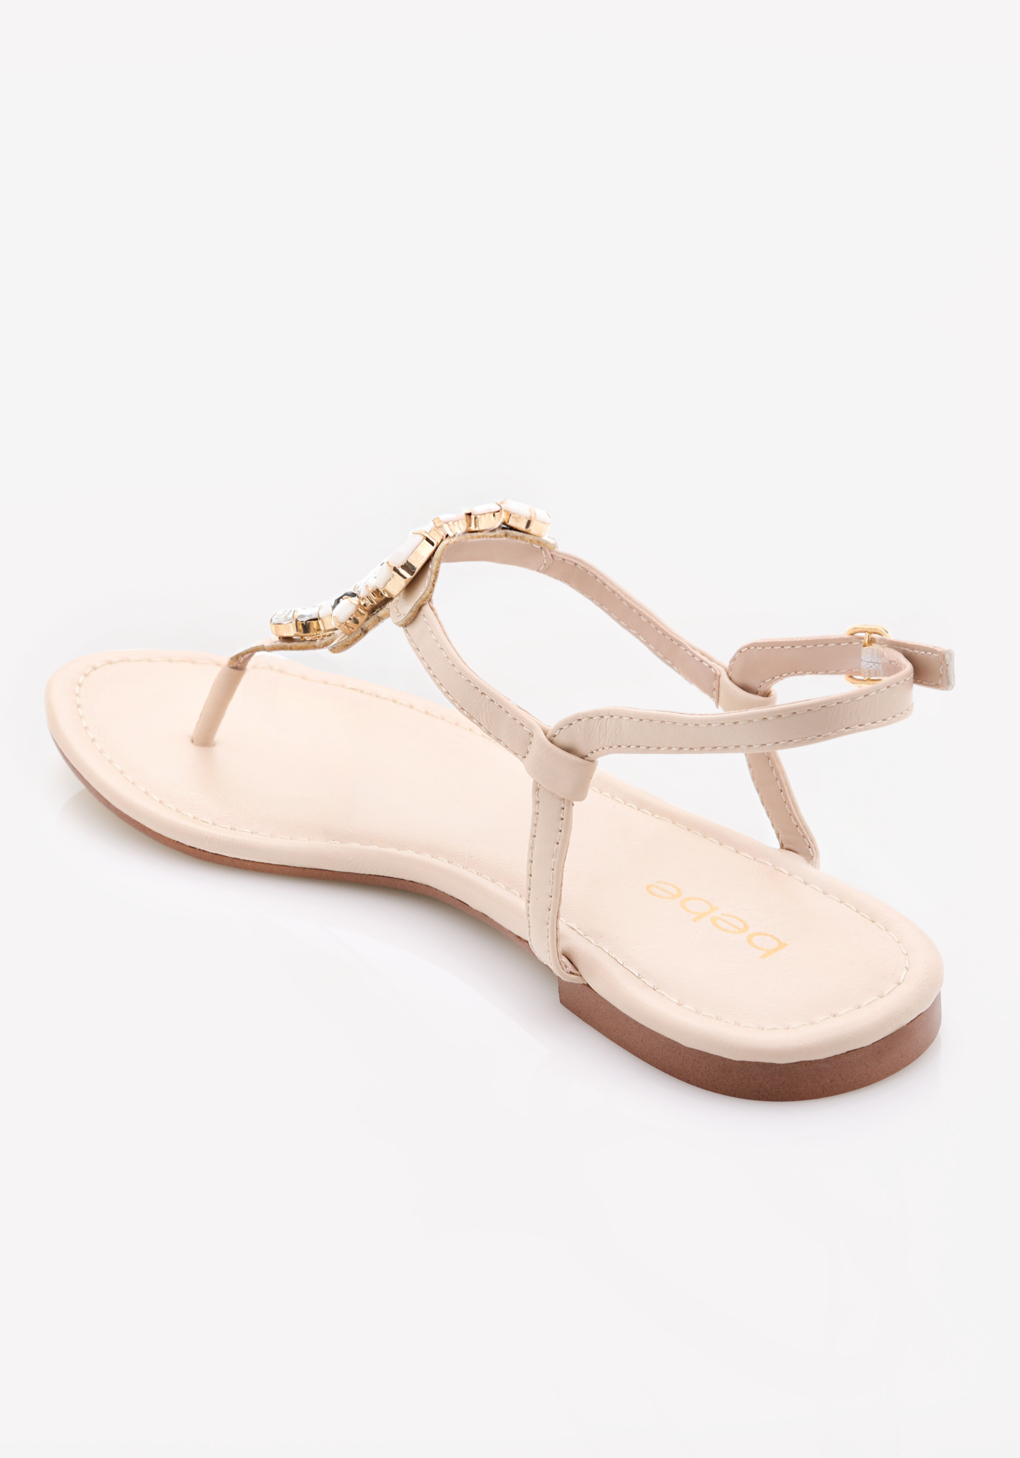 06db24061c1f9c Lyst - Bebe Shaya Jeweled Flat Sandals in Pink